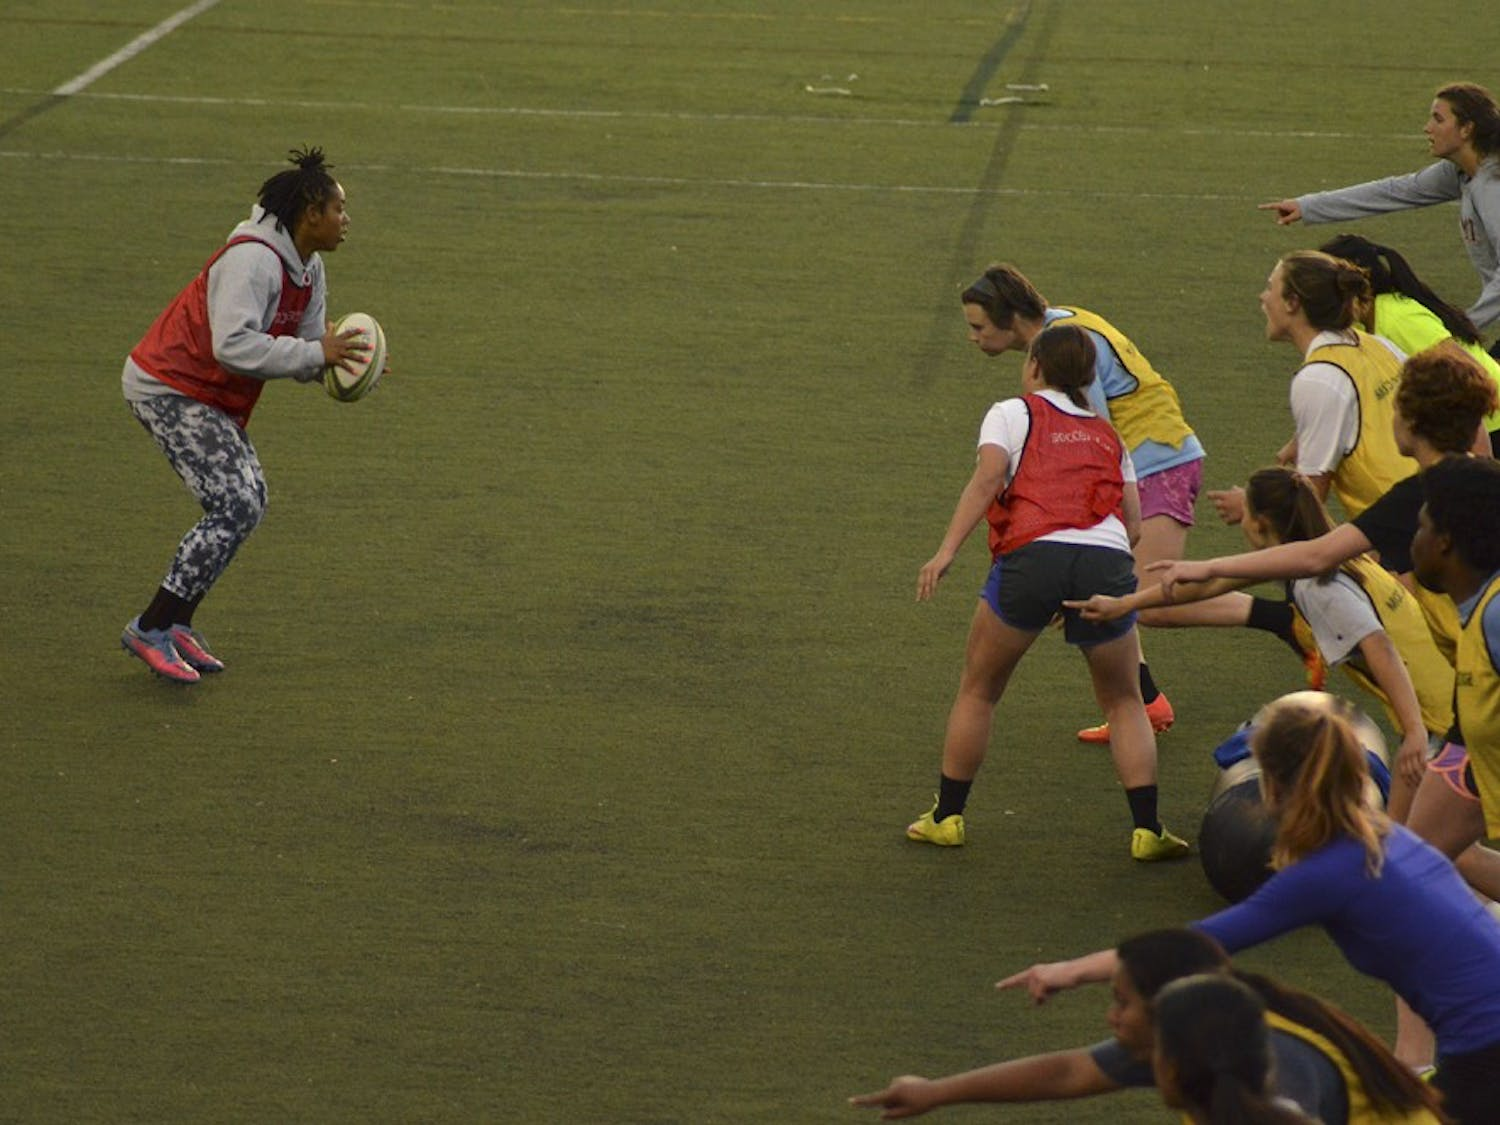 The UNC women's rugby team practices on Tuesday, April 5th on Hooker fields.